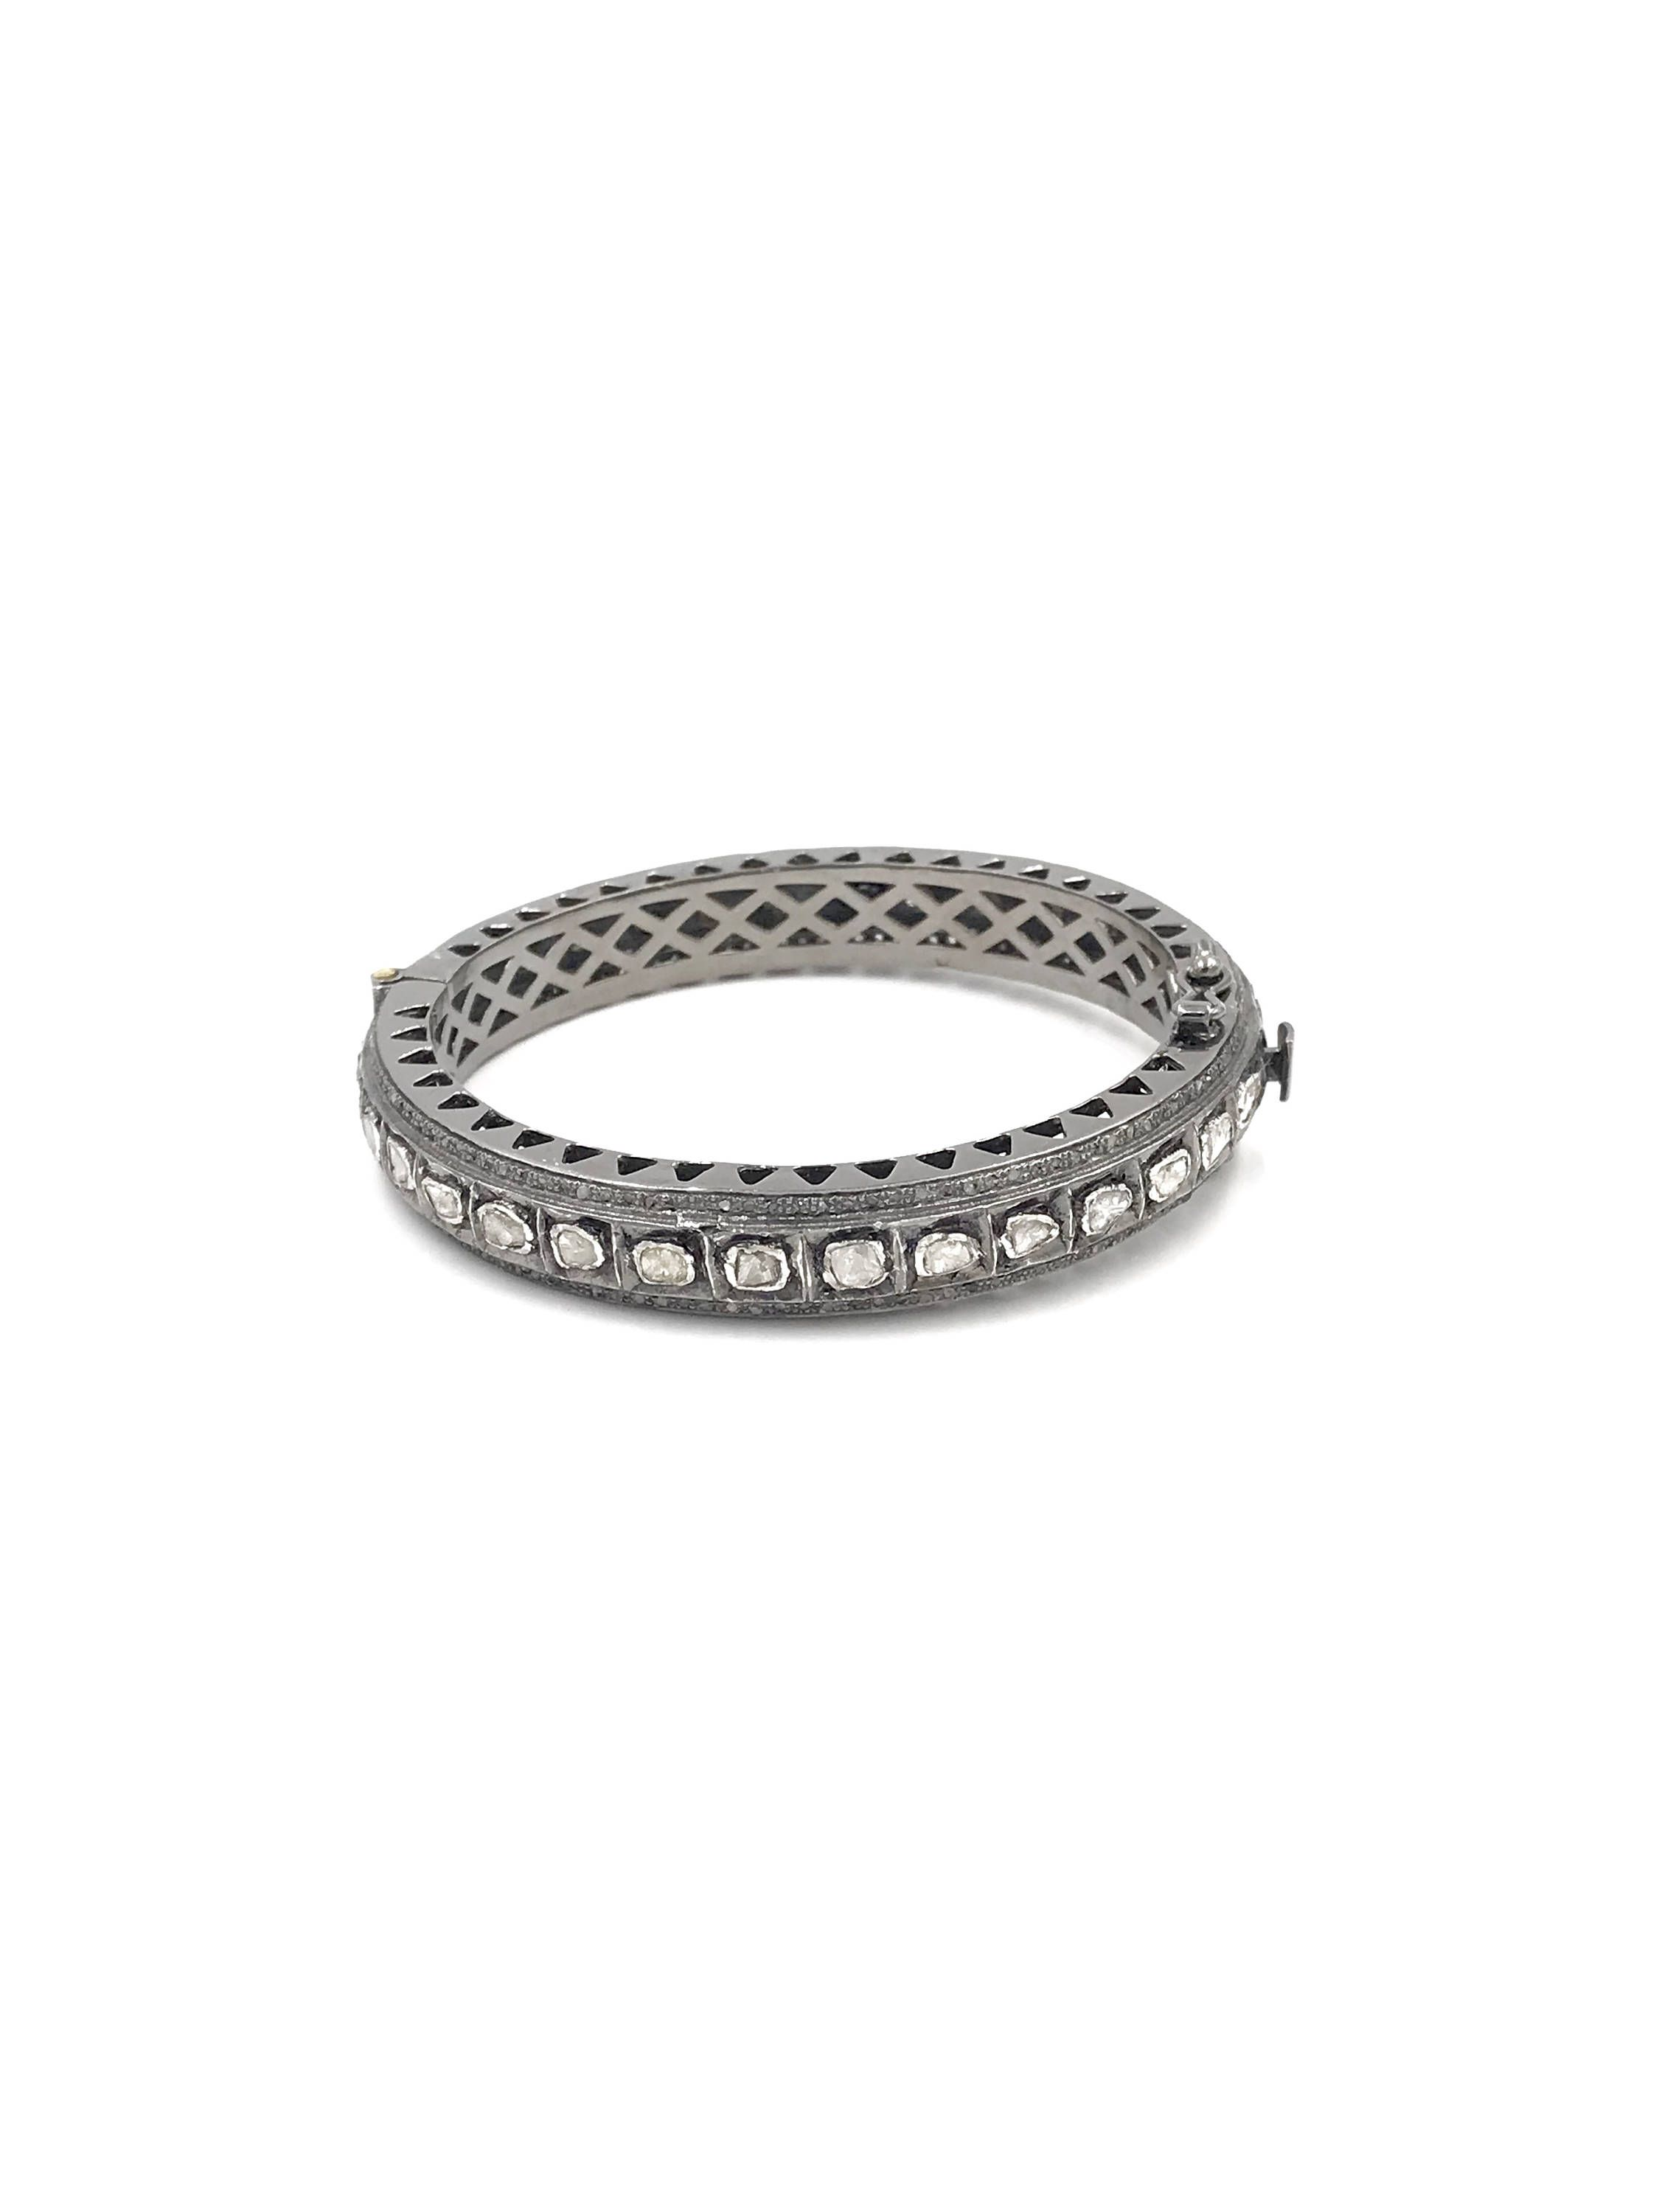 gold bangle silver white sterling bangles ethos product stackable pave pav diamond canada